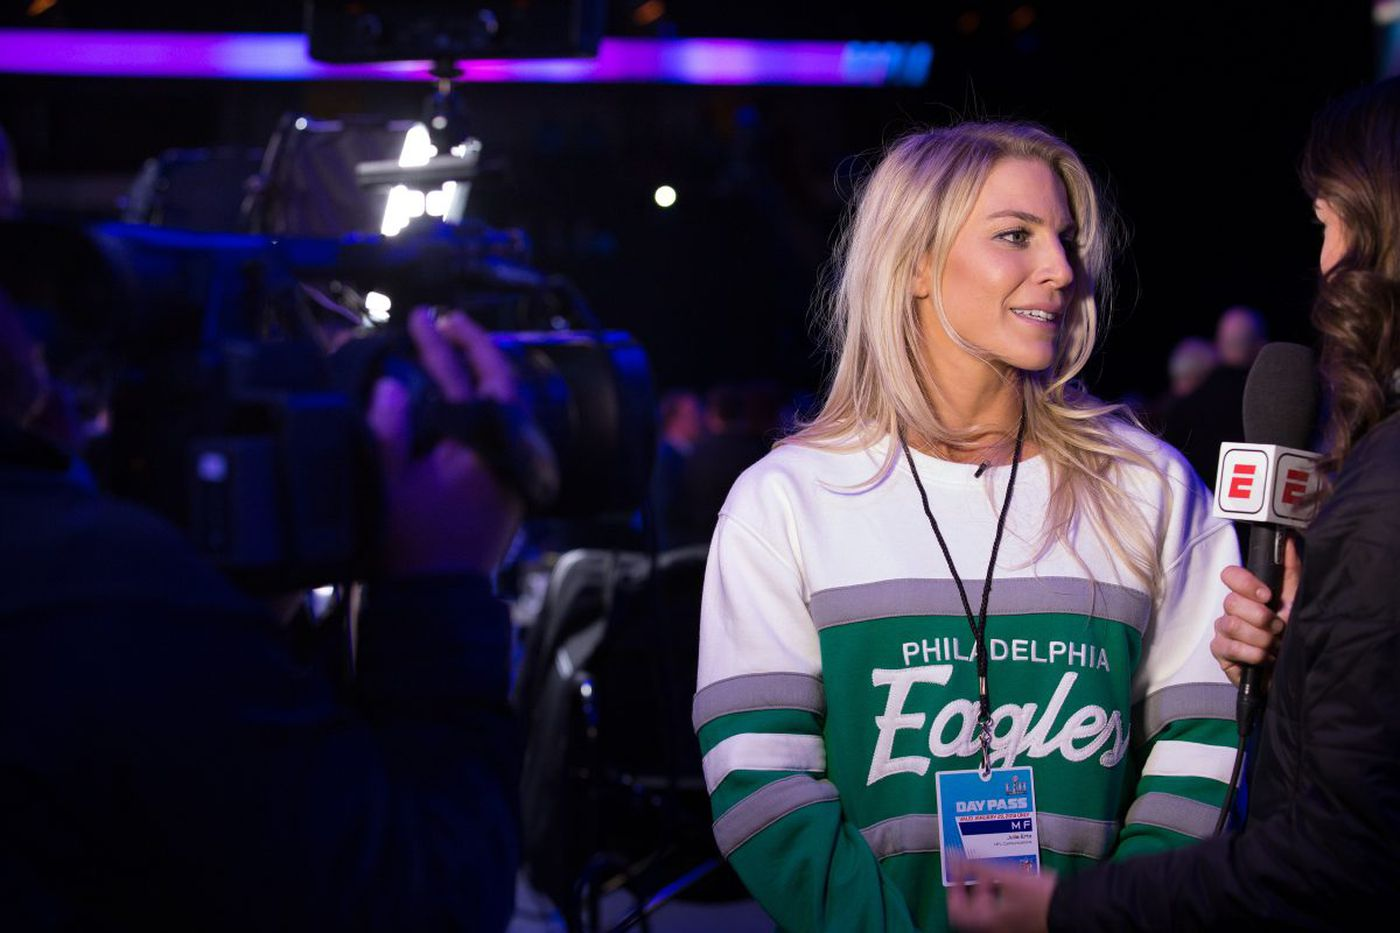 Even at her husband's big night, soccer star Julie Ertz plays a leading role